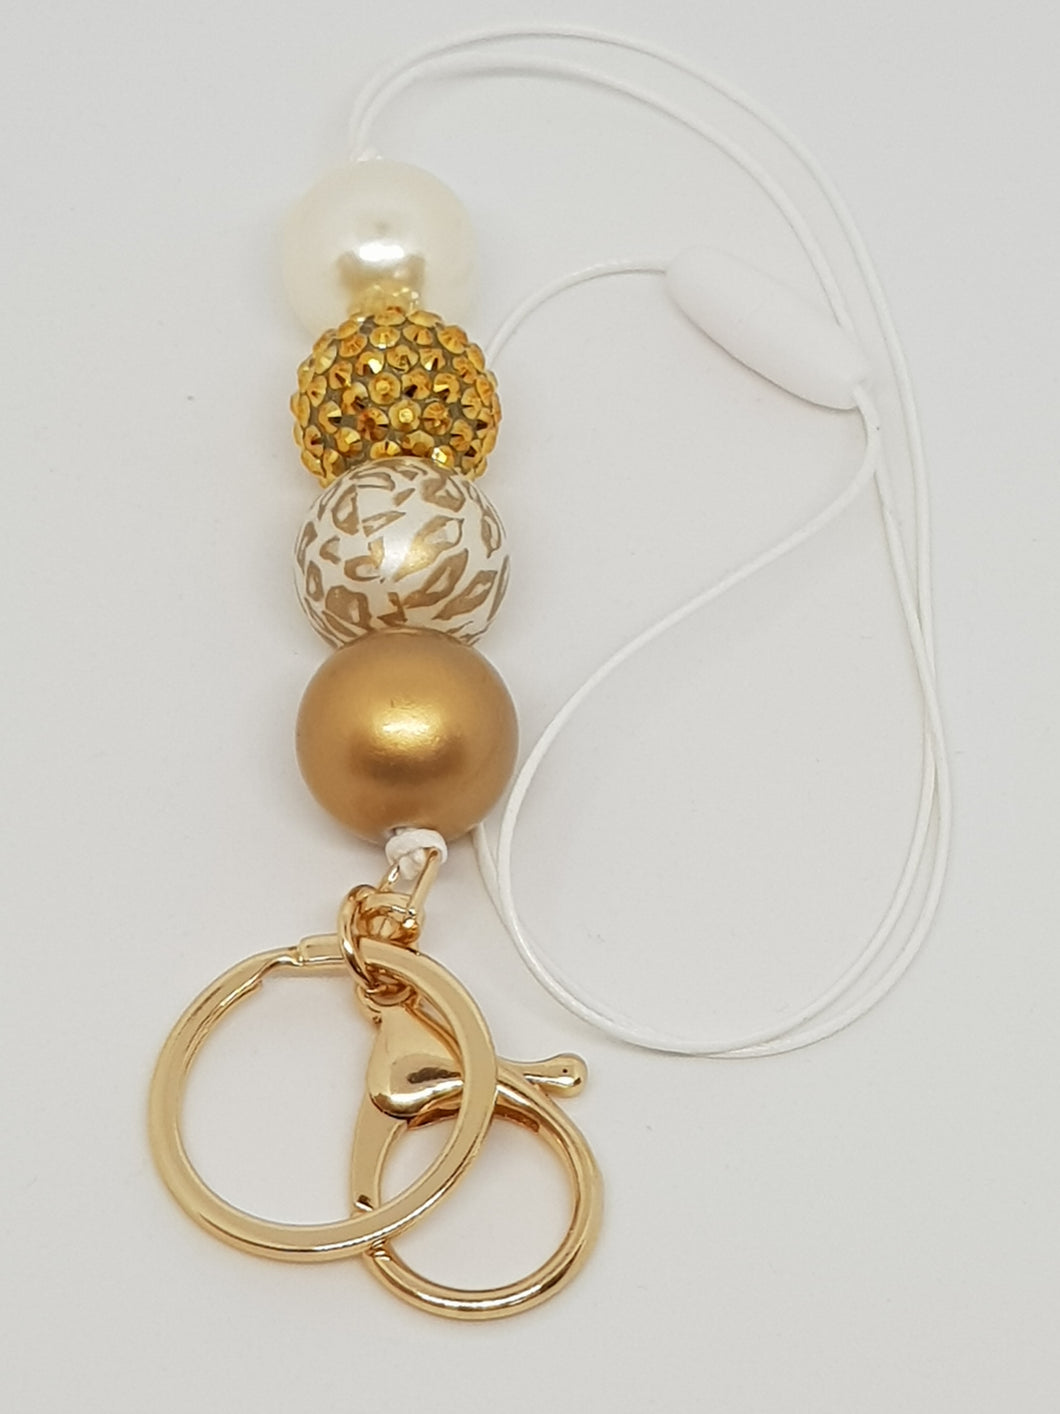 Bubblegum Bling Lanyard with Clip and Key Ring - Golden Girl